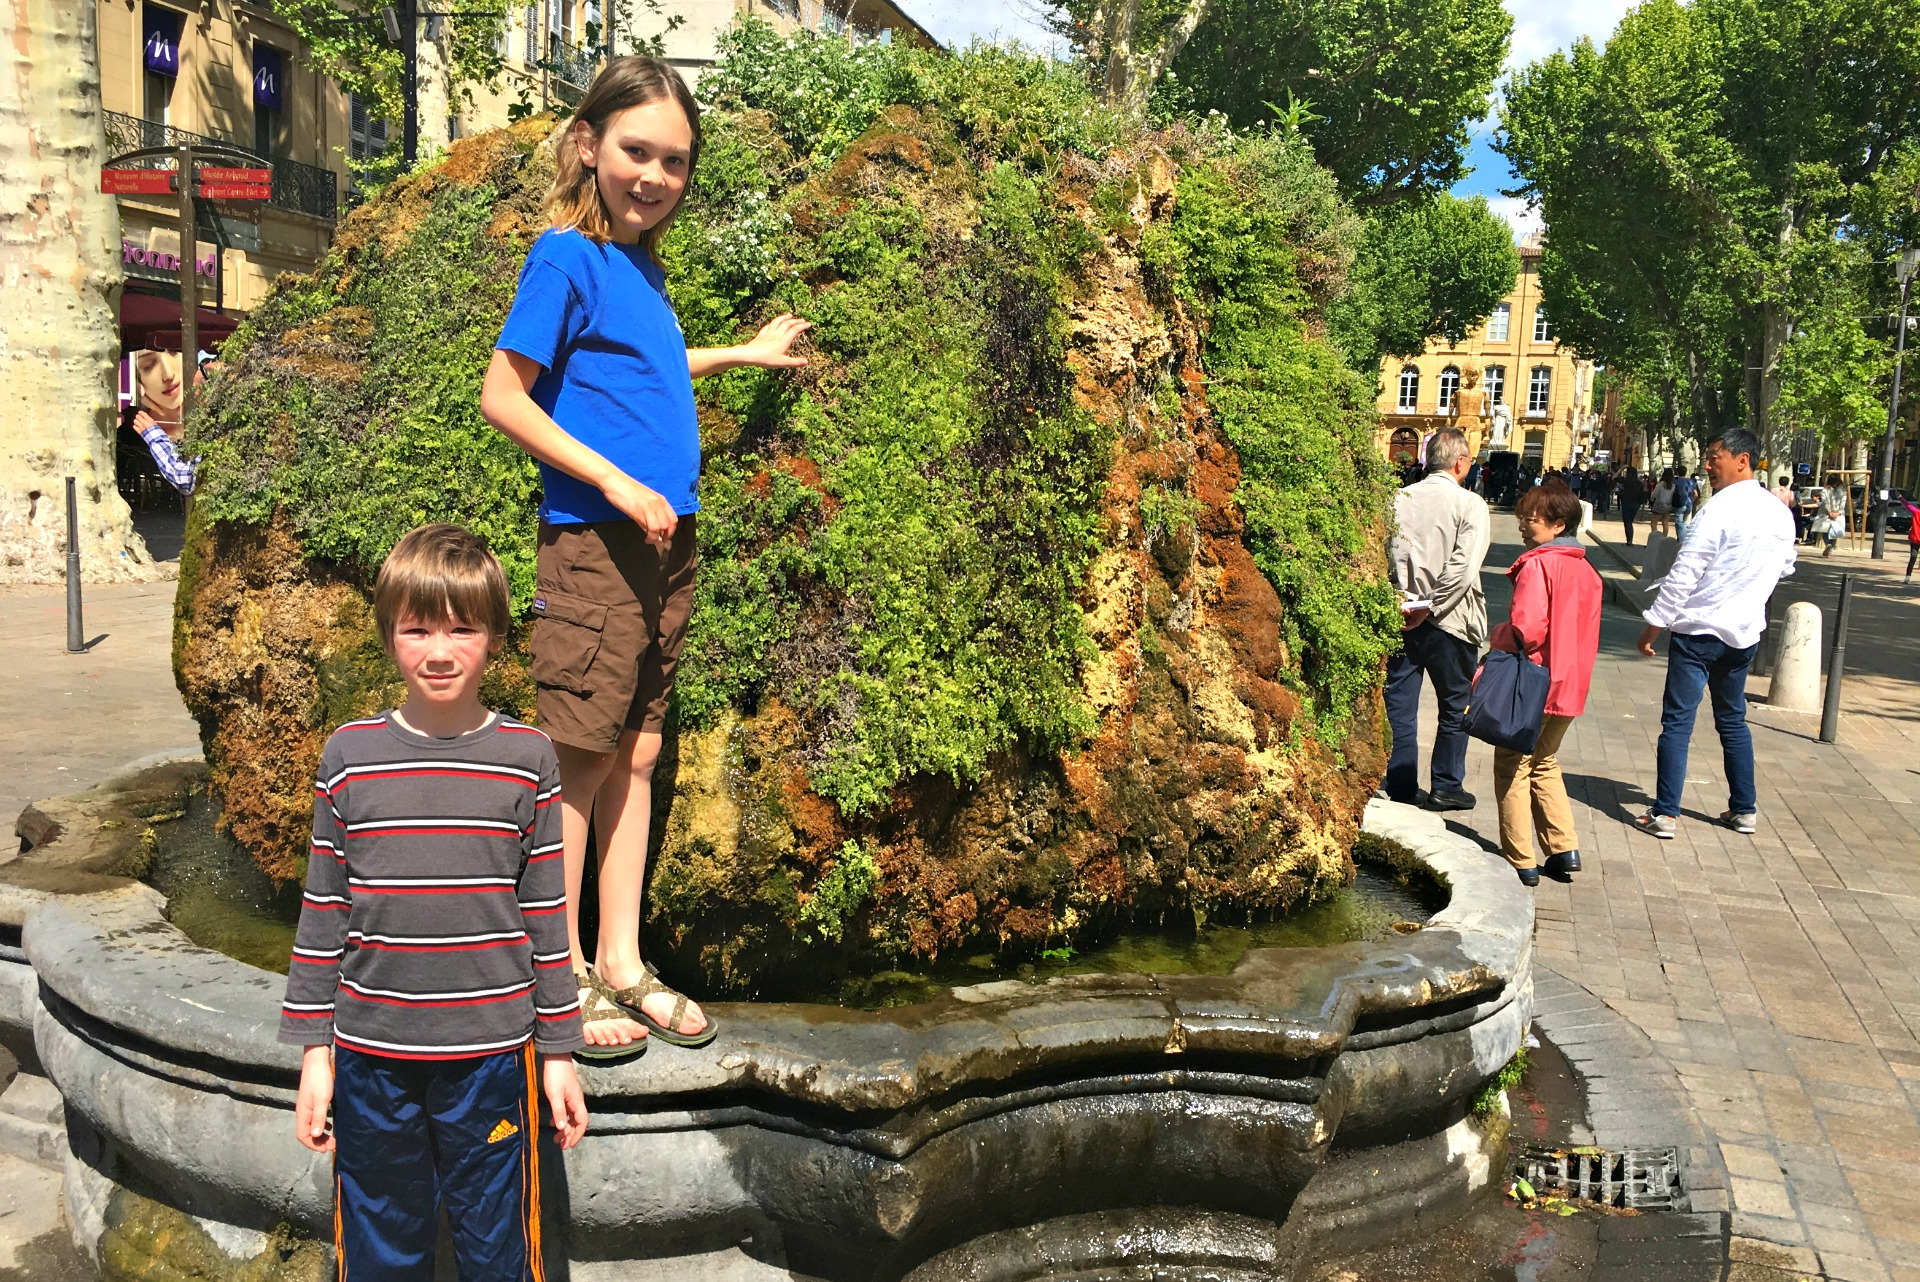 Moss covered fountains in Aix-en-Provence